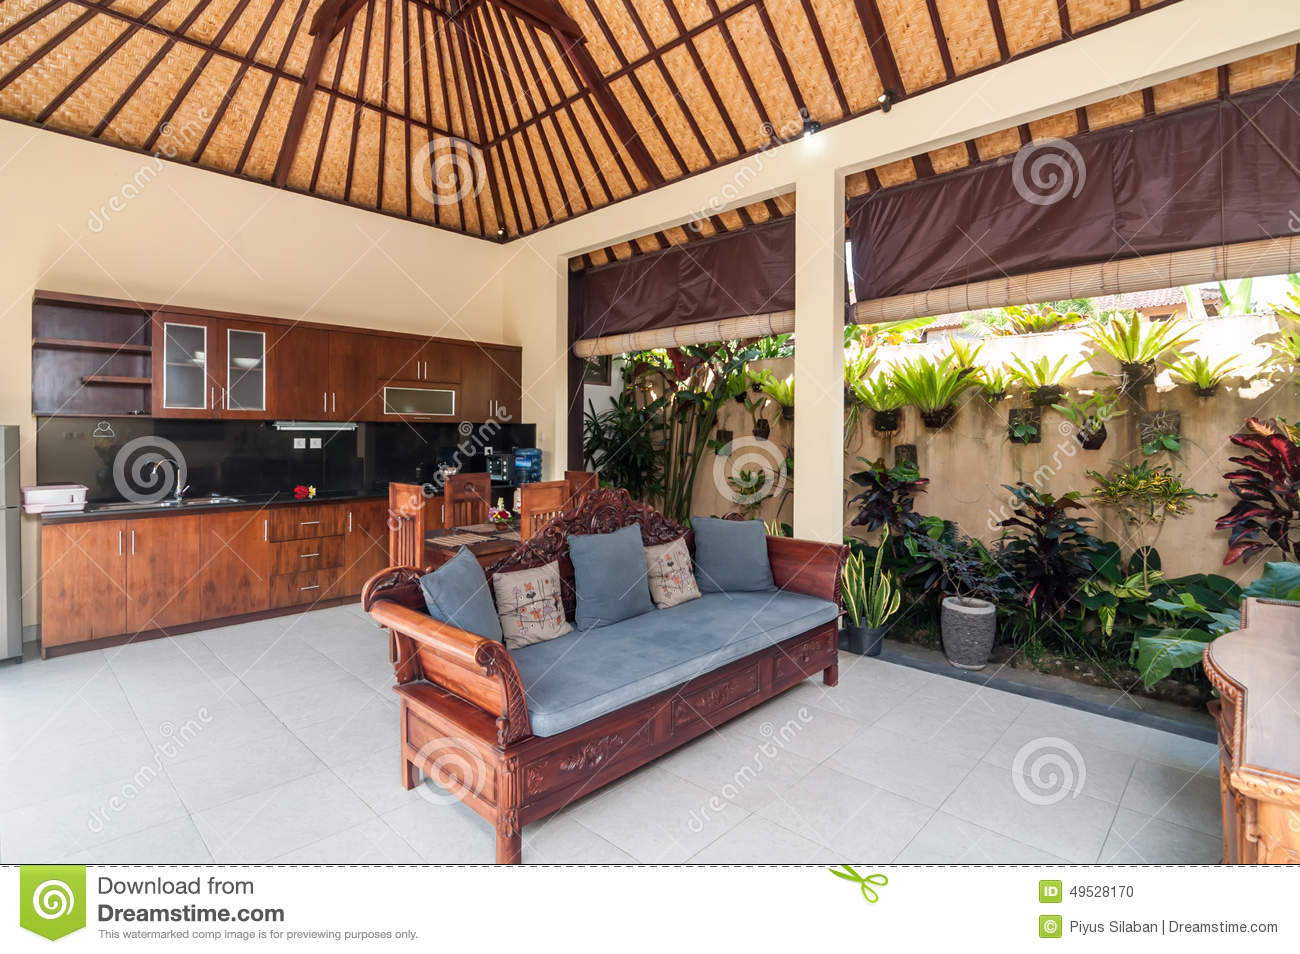 Bamboo Living Room And Kitchen Set. Stock Photo - Image of furniture ...